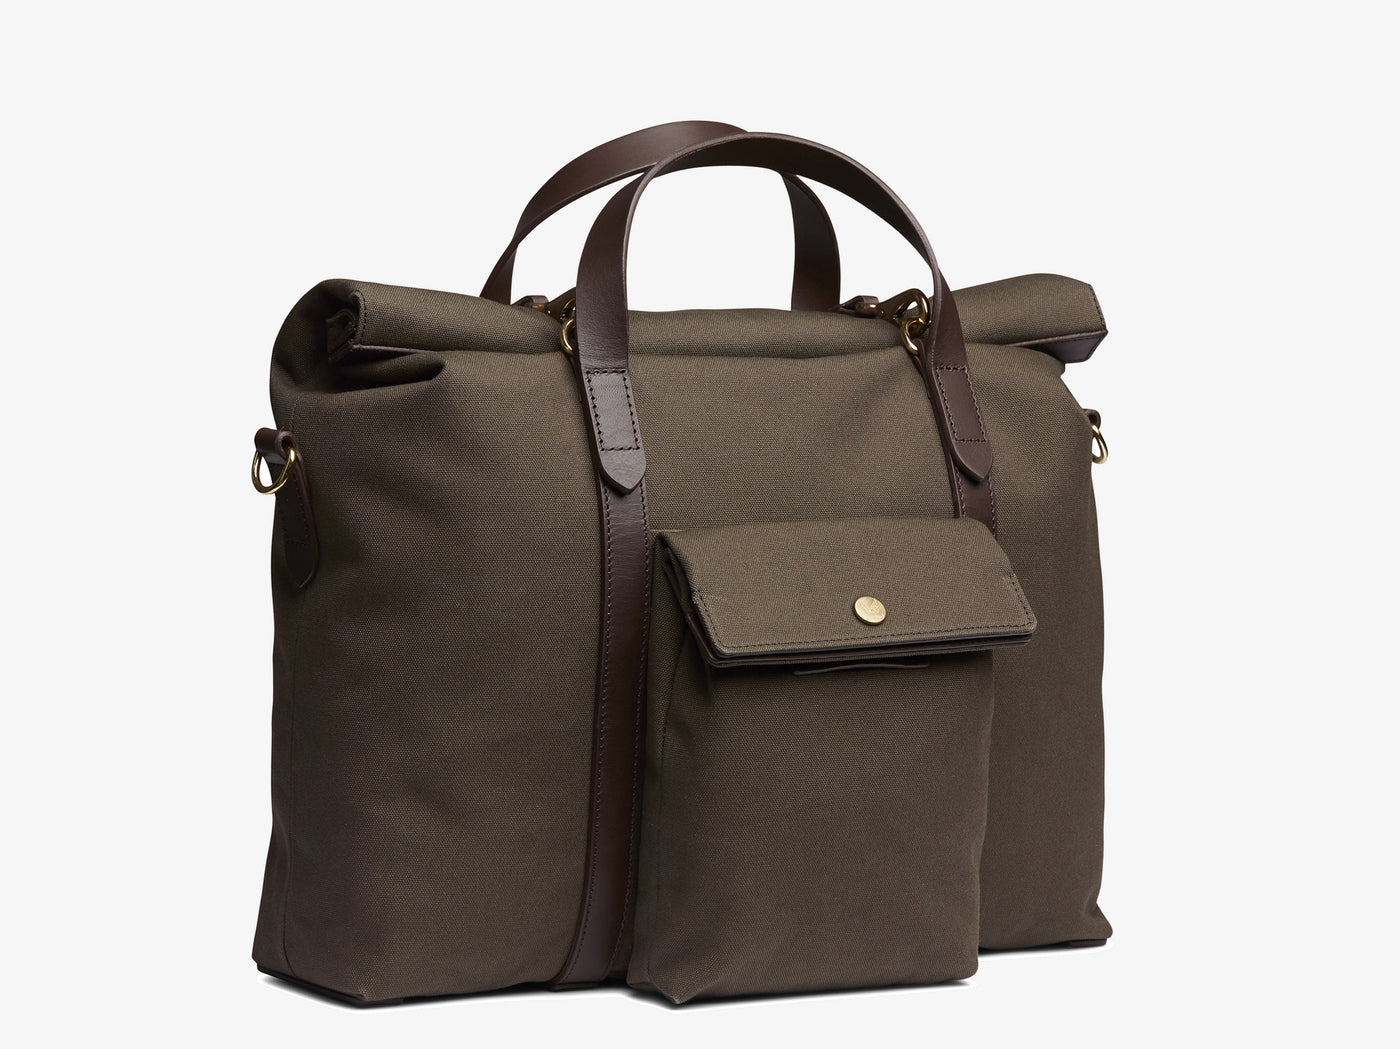 M/S Soft Work – Army/Dark Brown -  Briefcase - Mismo